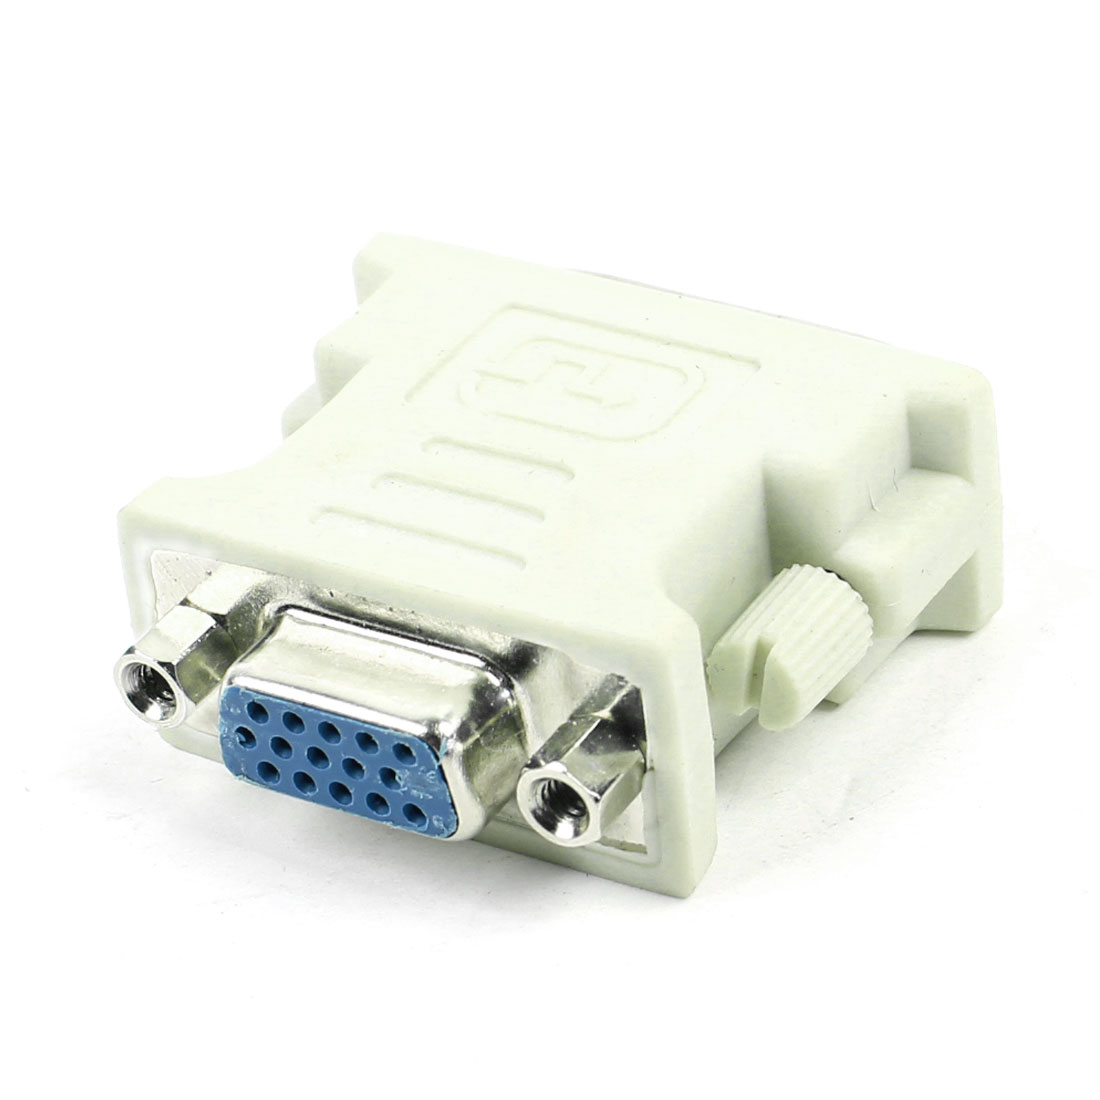 Off White DVI-I 24+5 Pin Male Dual Link to VGA 15 Pin Female Adapter